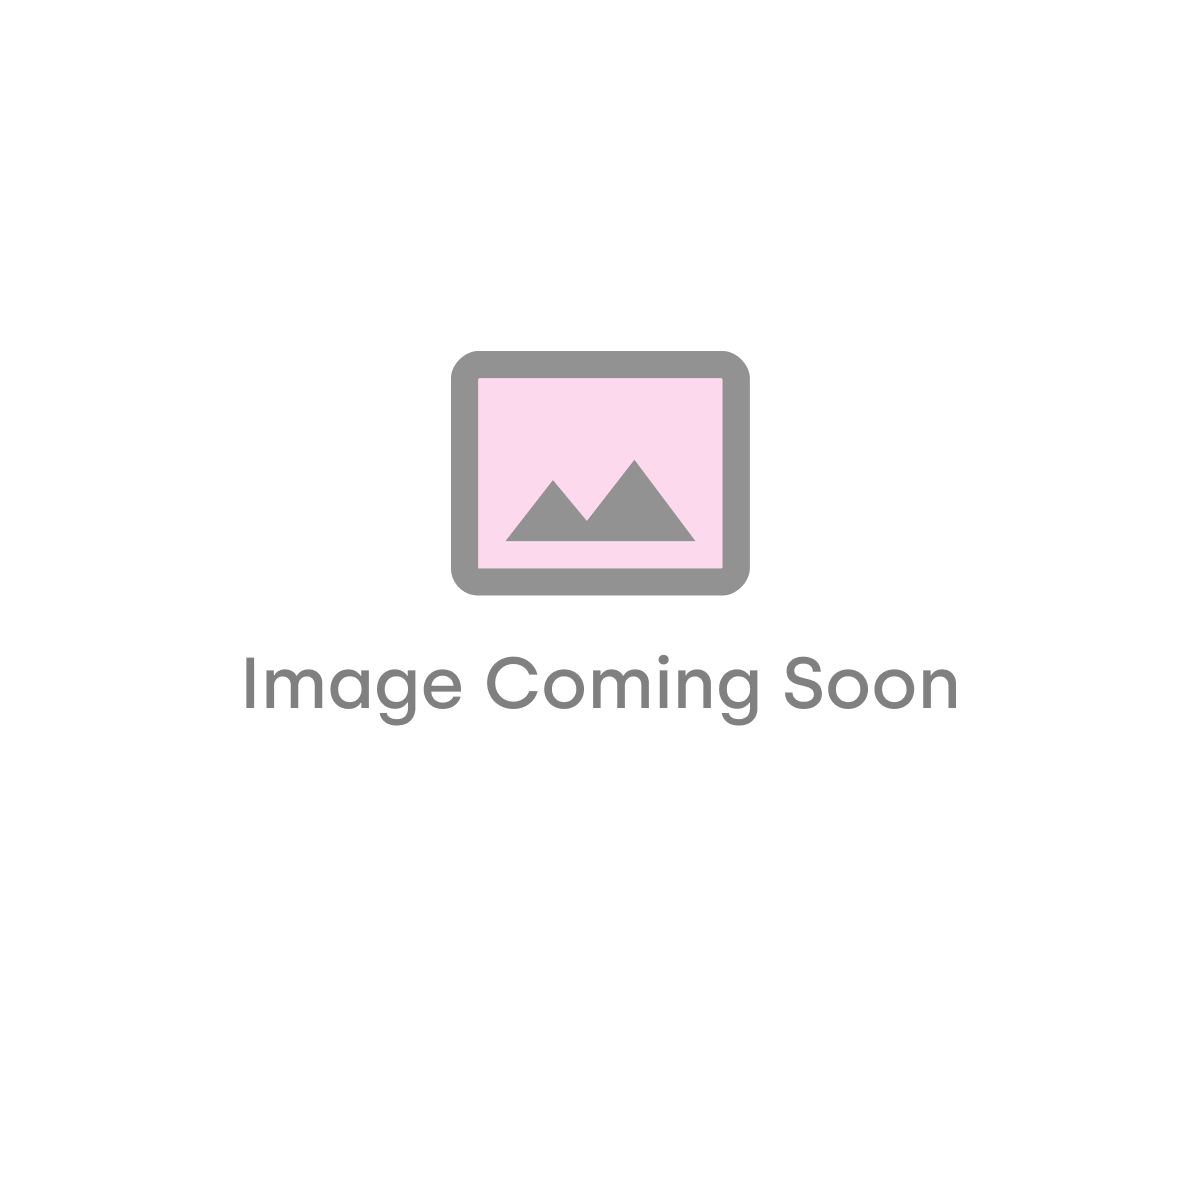 Minuto 400mm Wall Mounted Cloakroom Vanity Unit & Basin - Gloss White (19247)